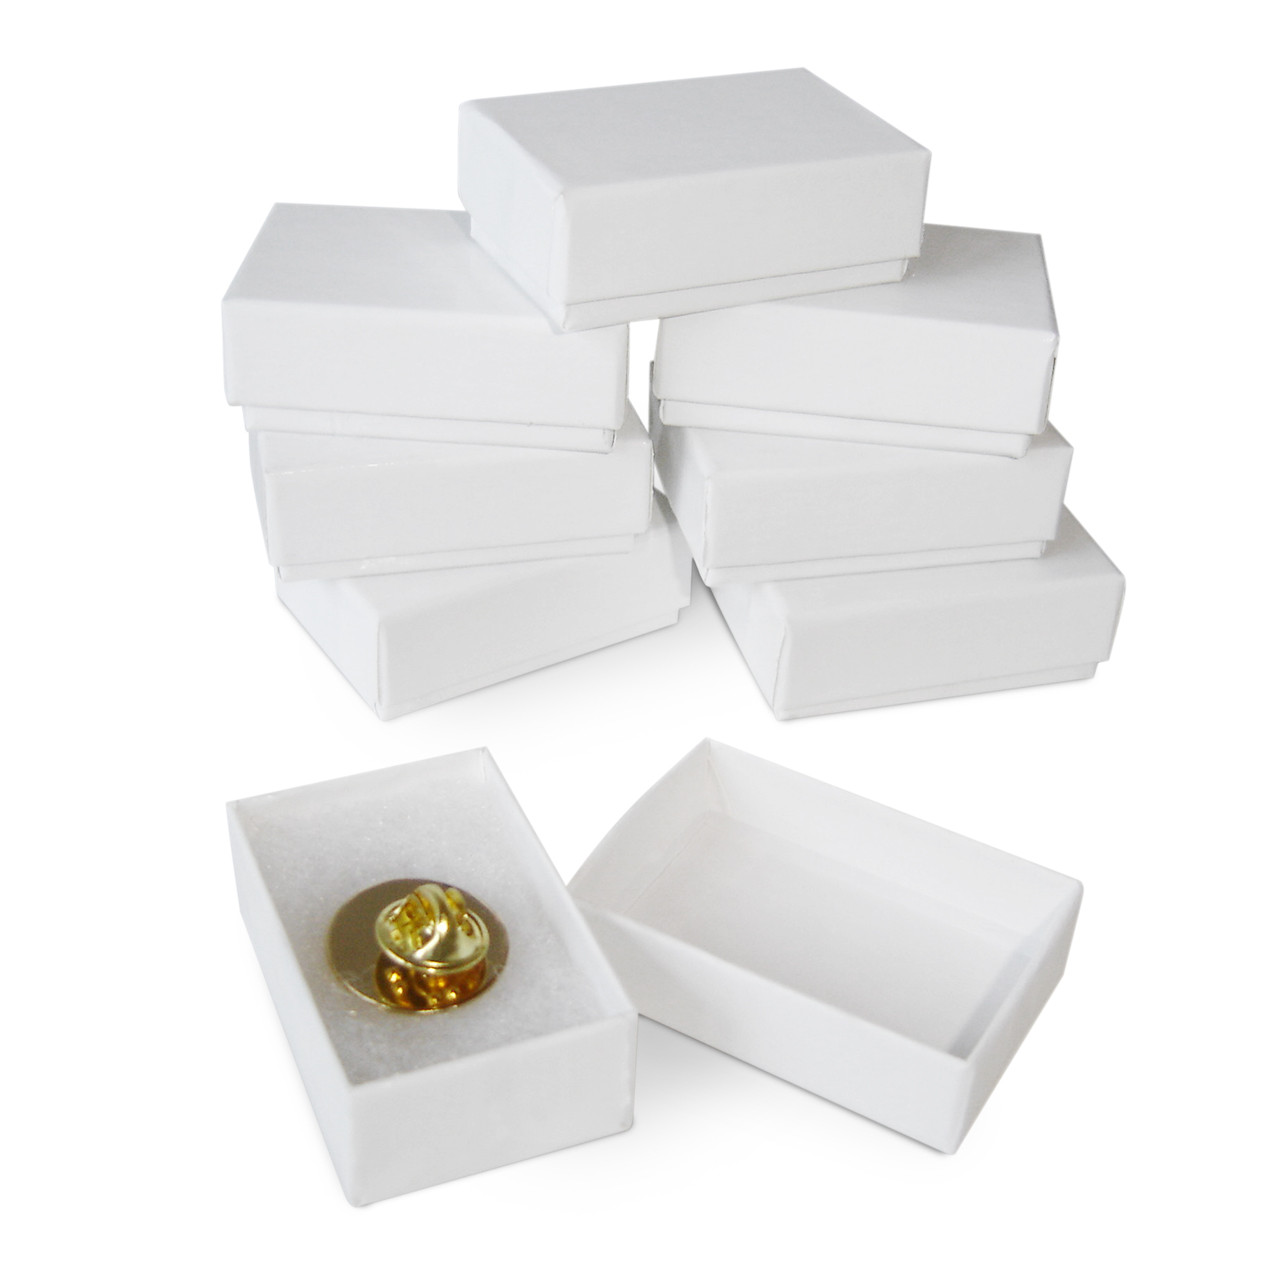 Gift Box for Lapel Pins; several boxes